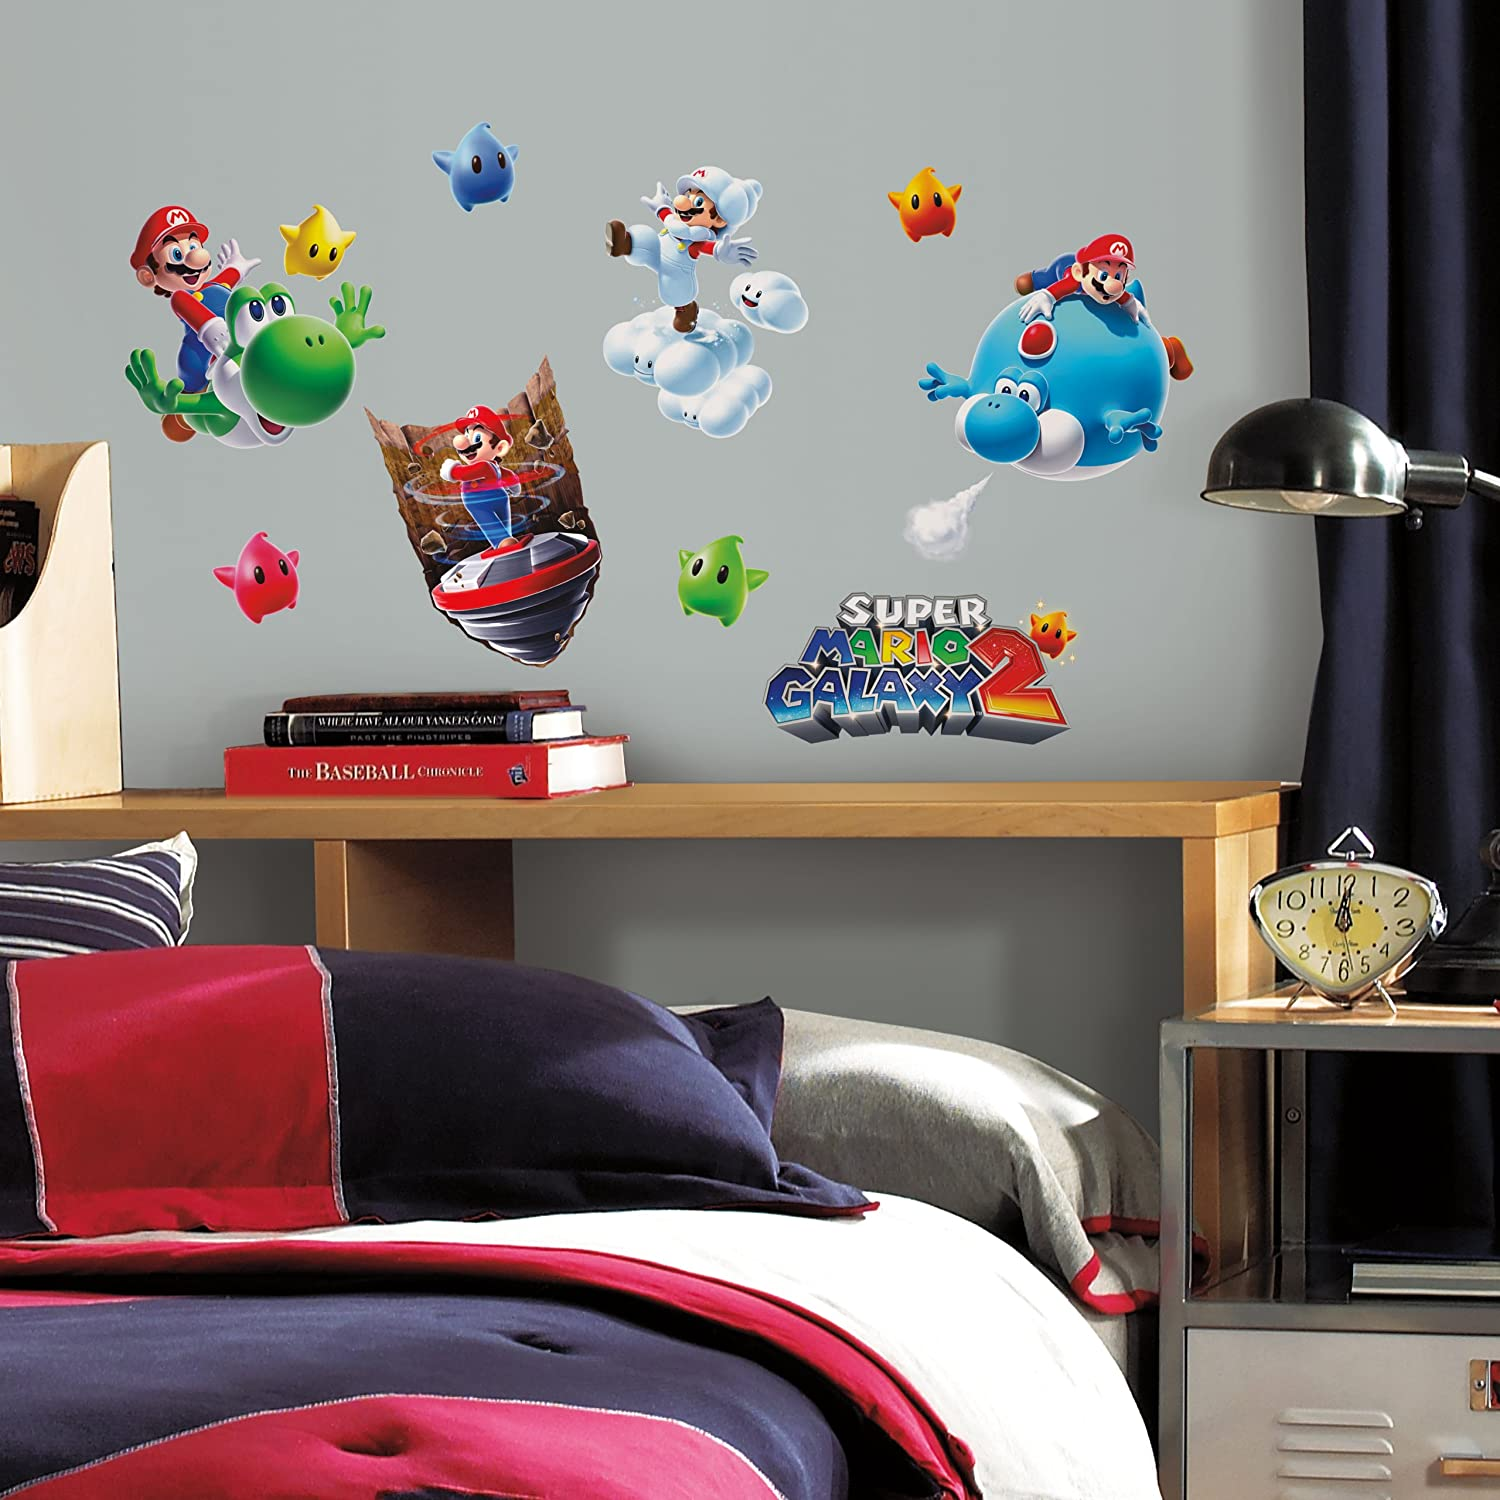 Roommates 871scs nintendo mario galaxy 2 peel and stick wall roommates 871scs nintendo mario galaxy 2 peel and stick wall decals wall decor stickers amazon amipublicfo Image collections